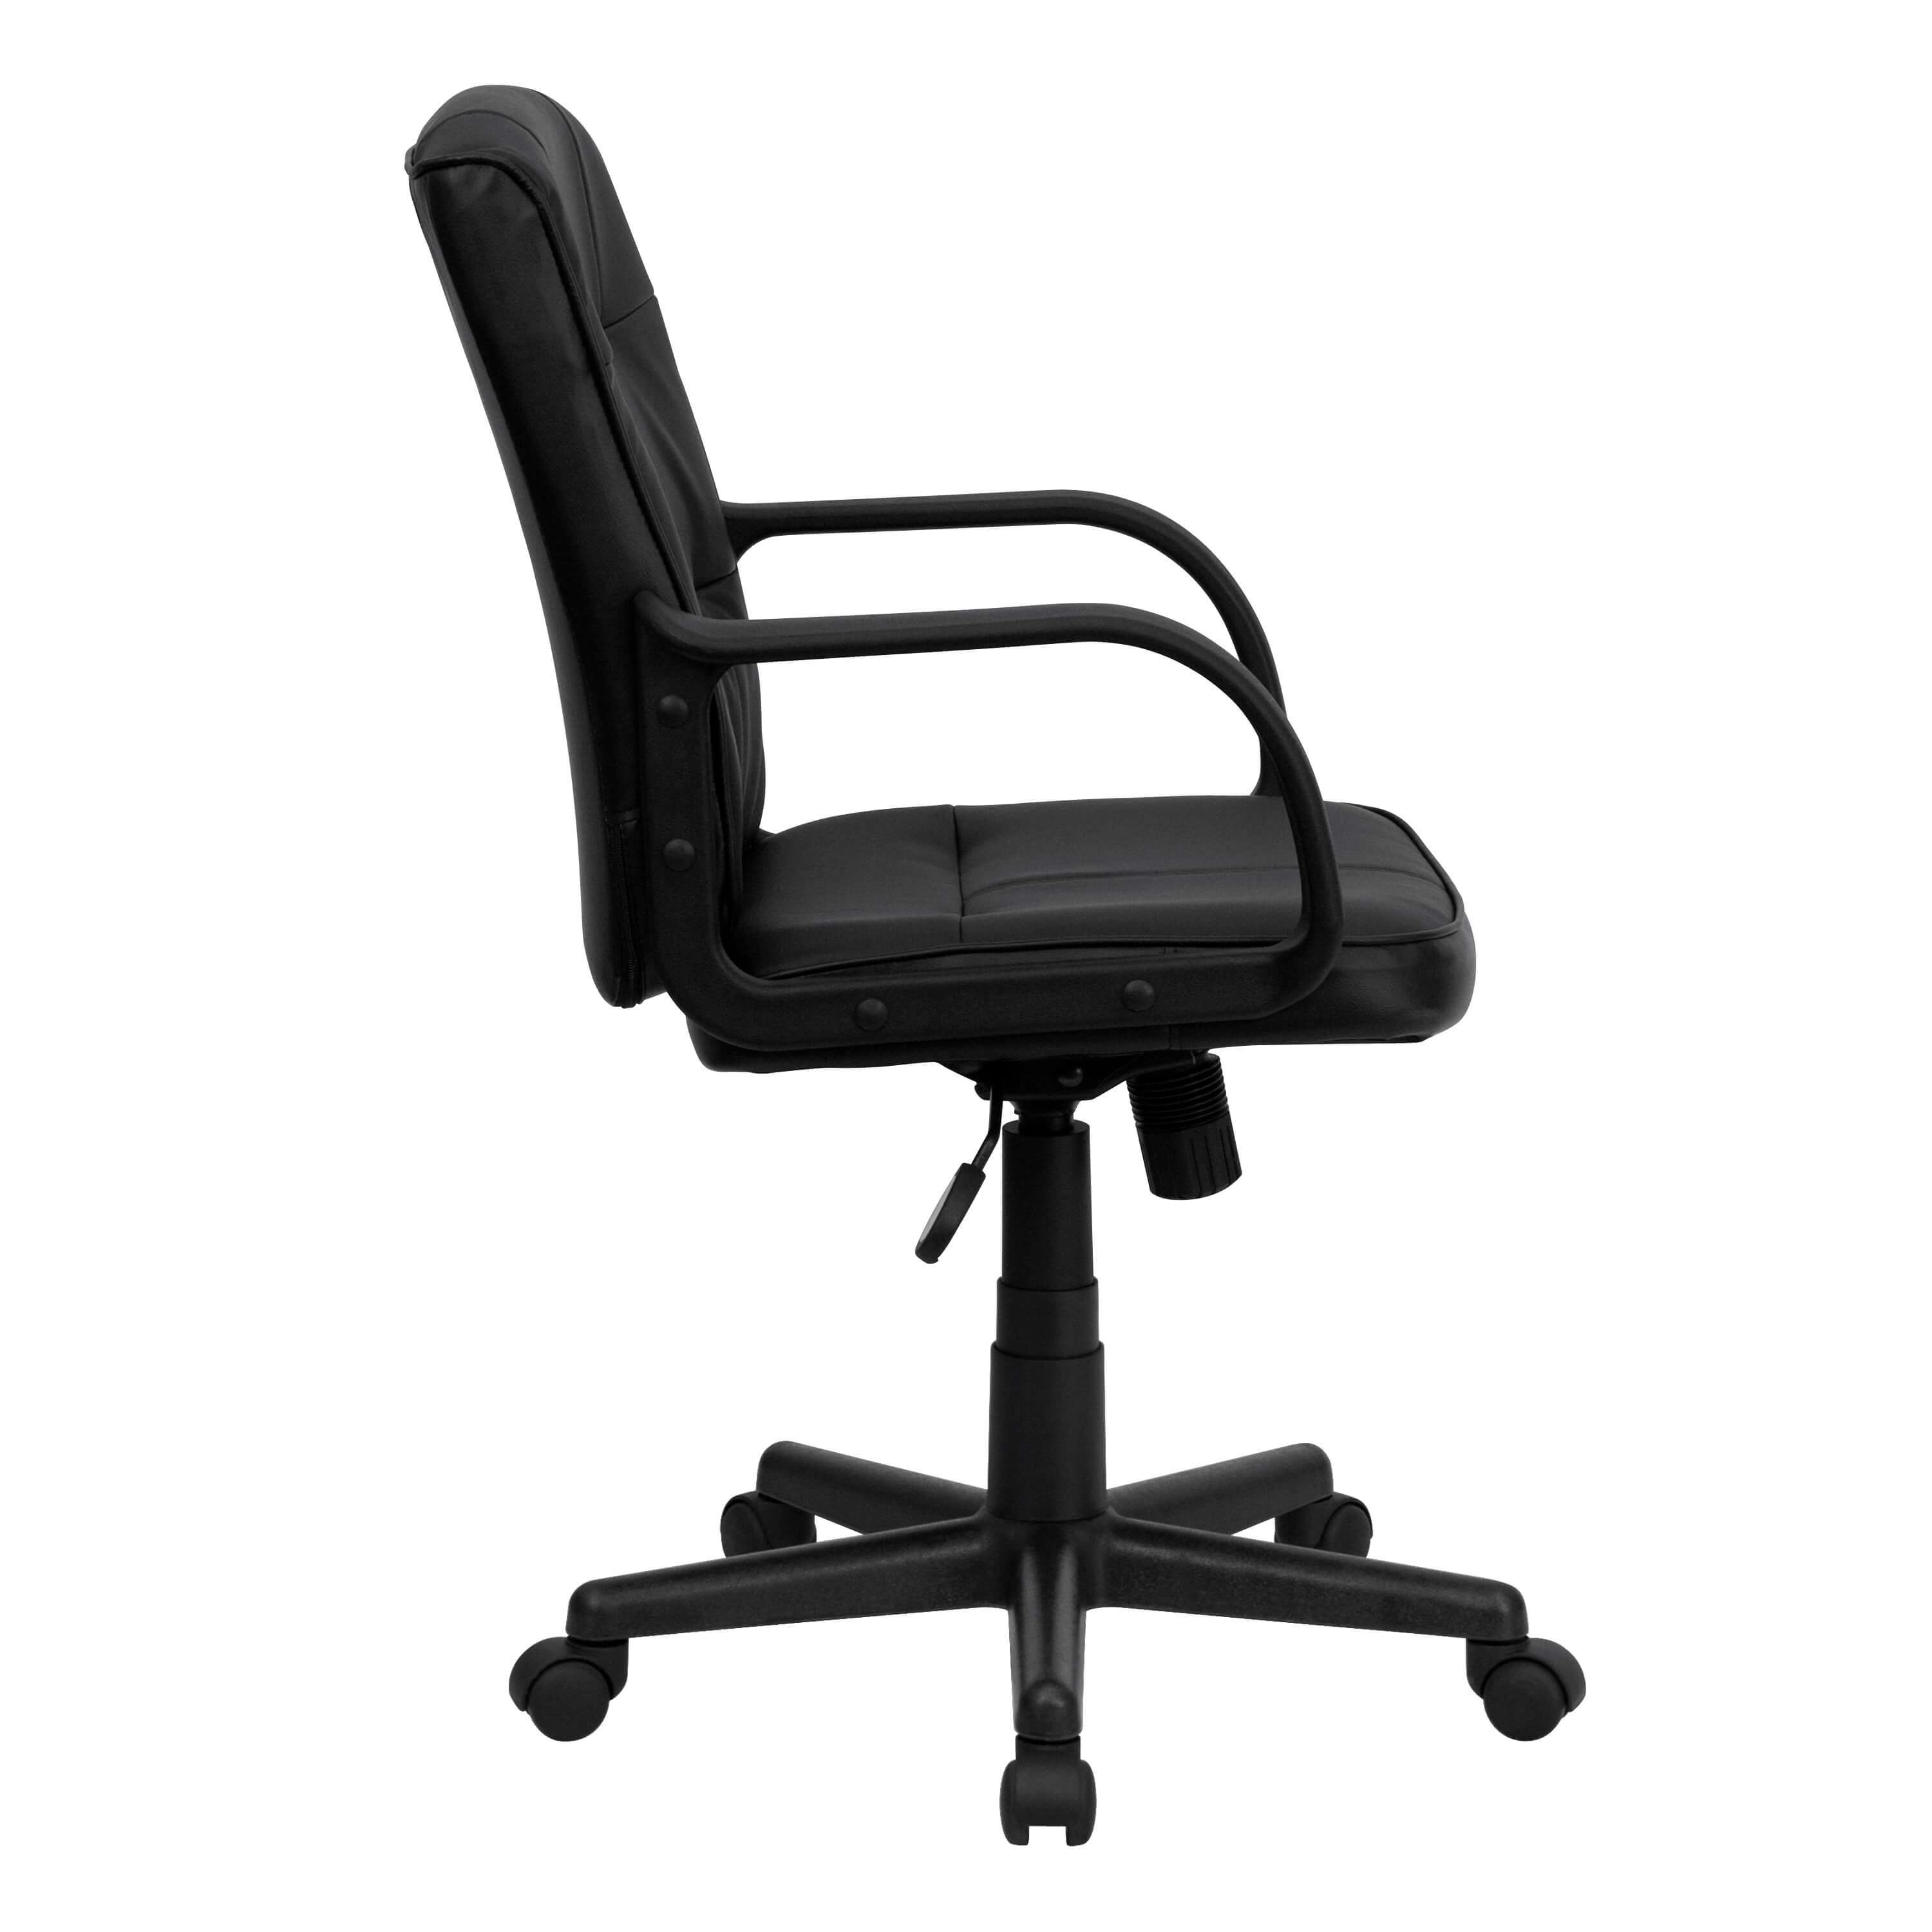 Black leather office chair side view